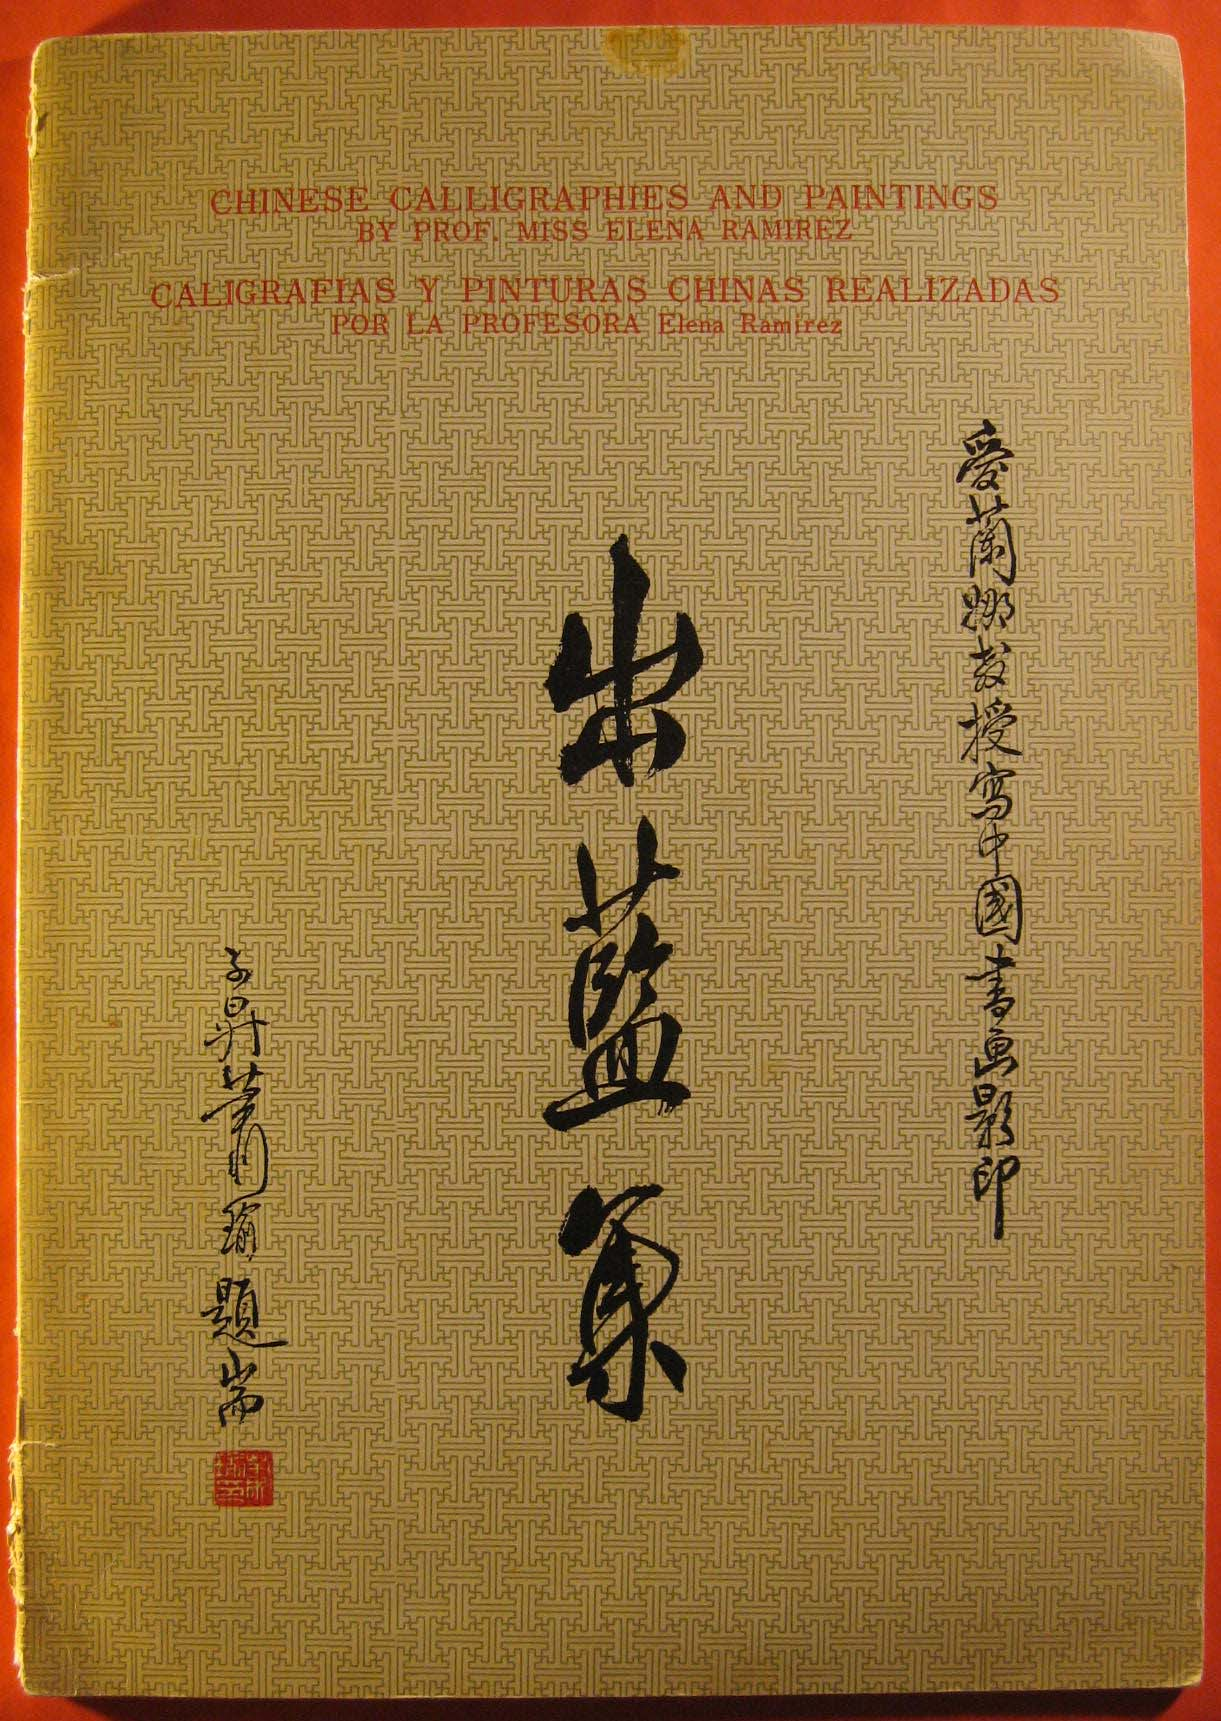 Image for Chinese Calligraphies and Paintings By Prof. Miss Elena Ramirez / Caligrafias Y Pinturas Chinas Realizadas Por La Profesora Elena Ramirez